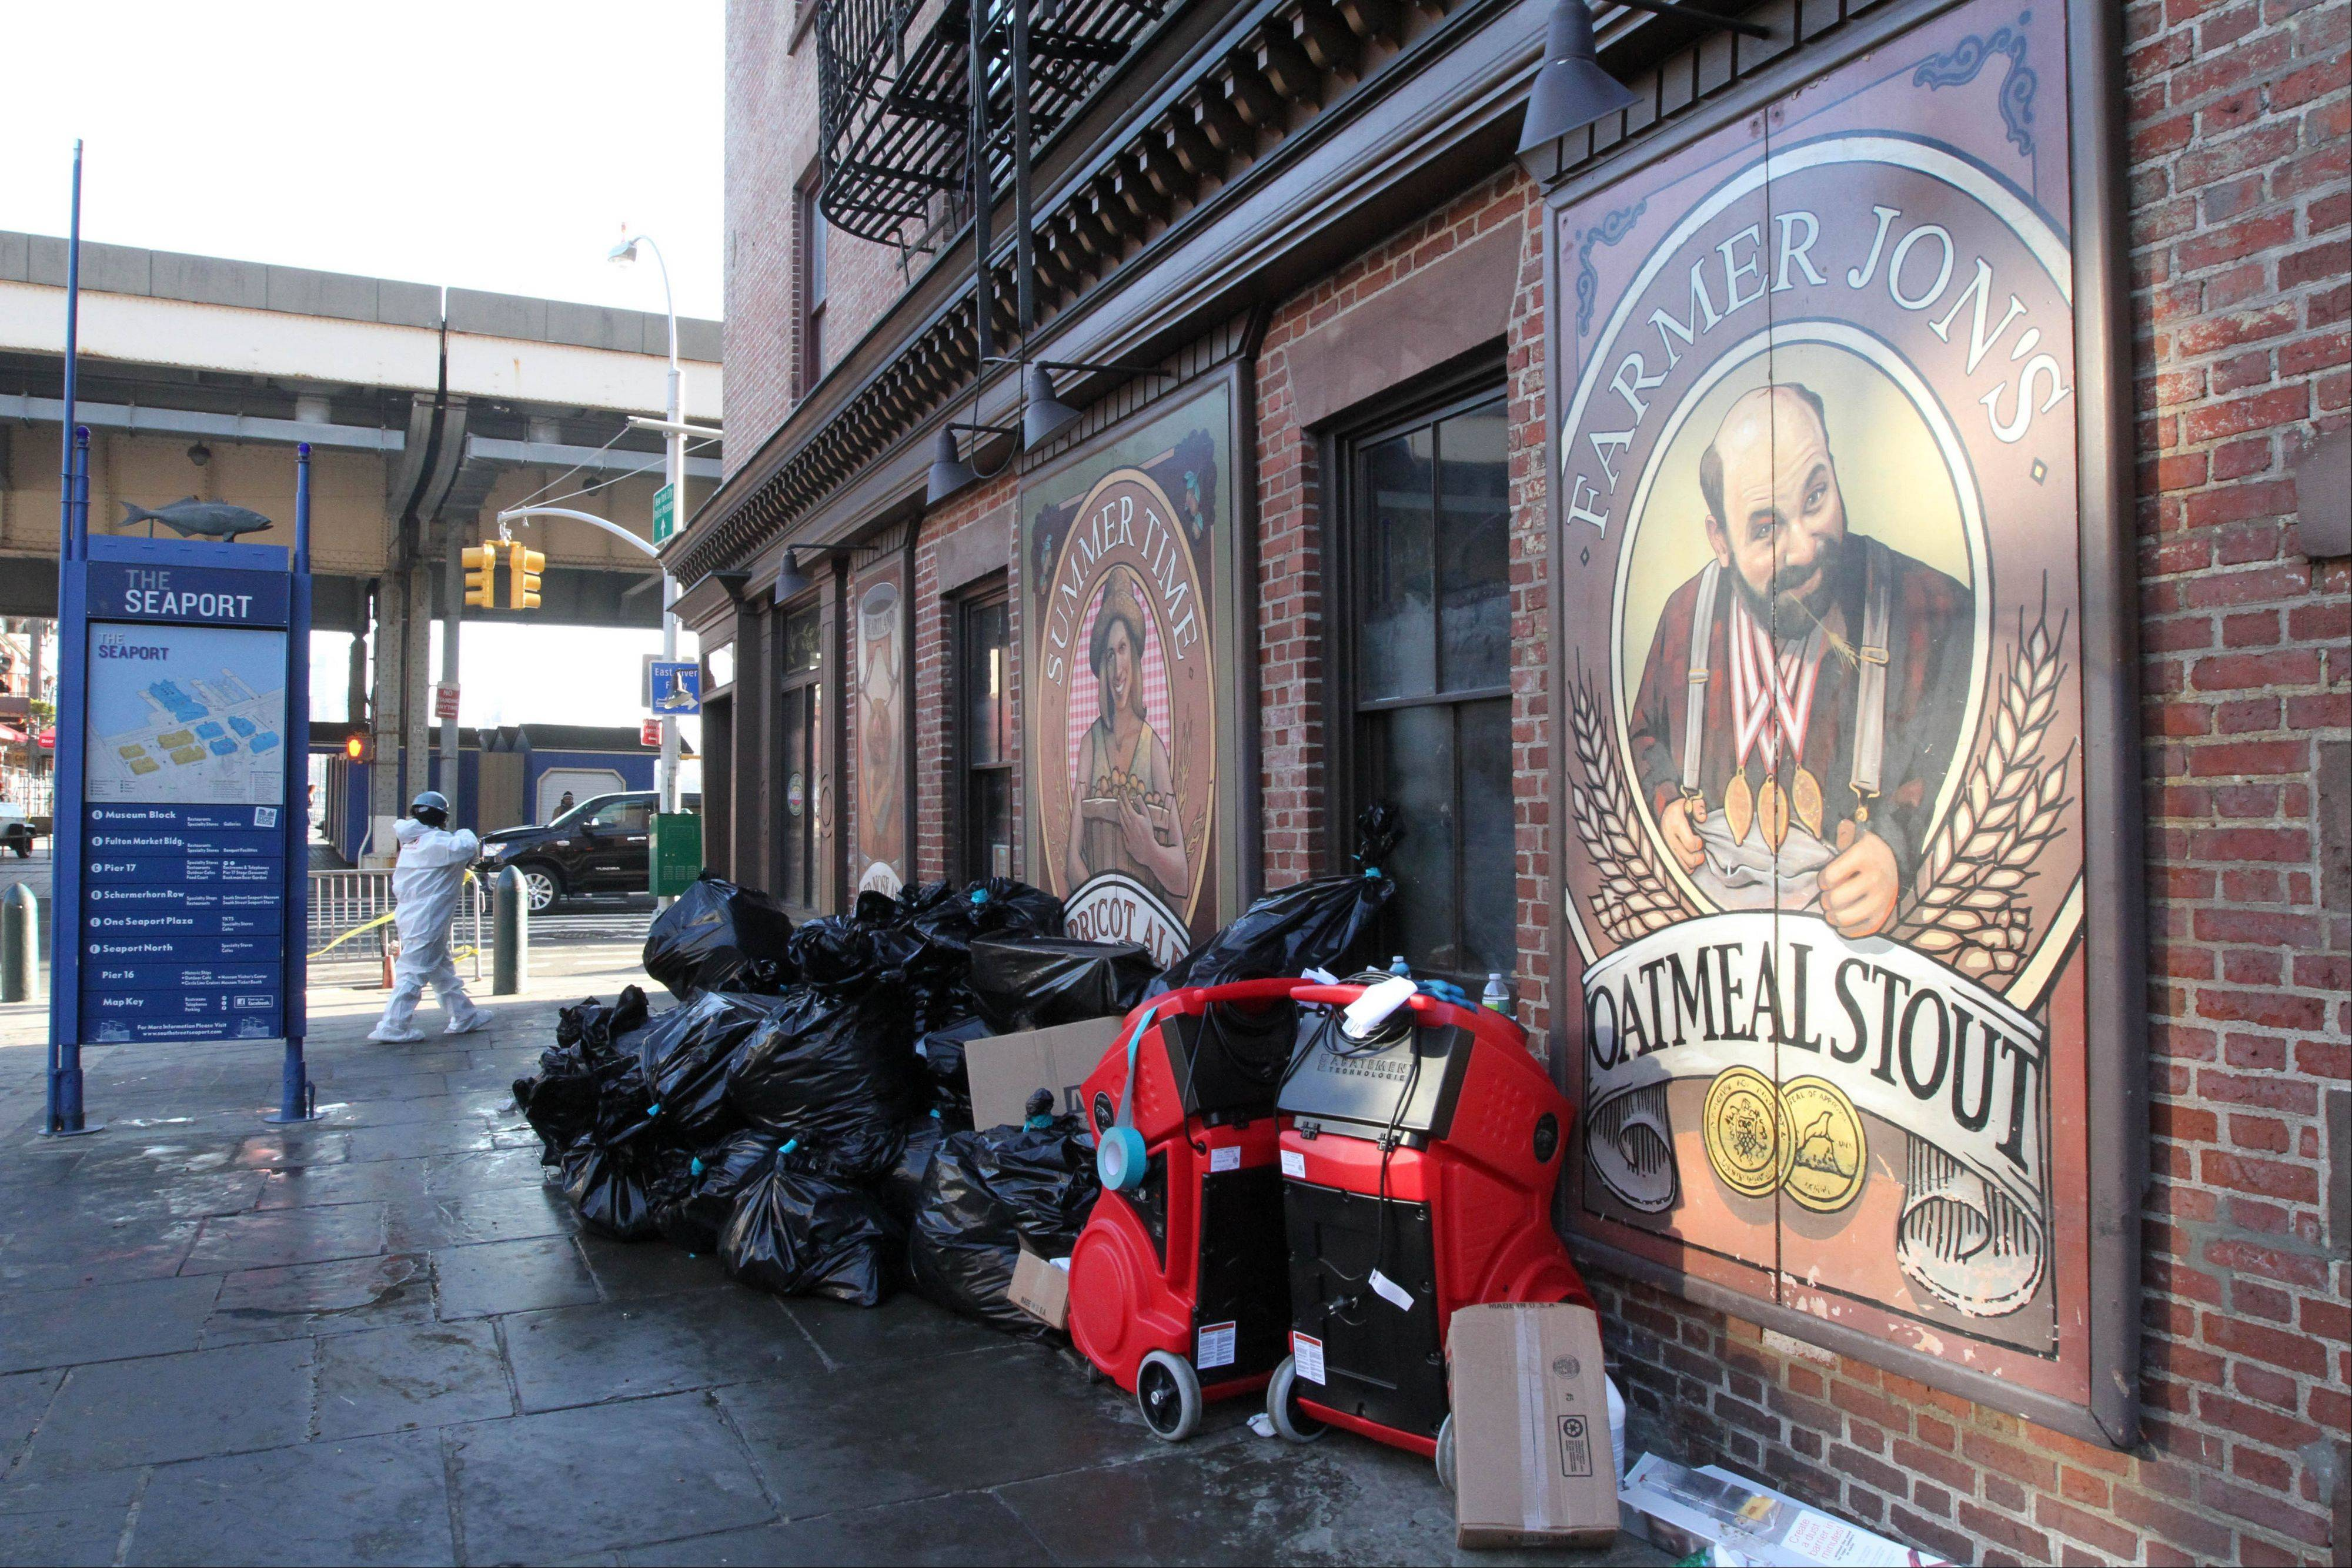 A worker wearing protective clothing enters the Heartland Brewery at New York's South Street Seaport, as bags of garbage from the Superstorm Sandy cleanup sit out front.